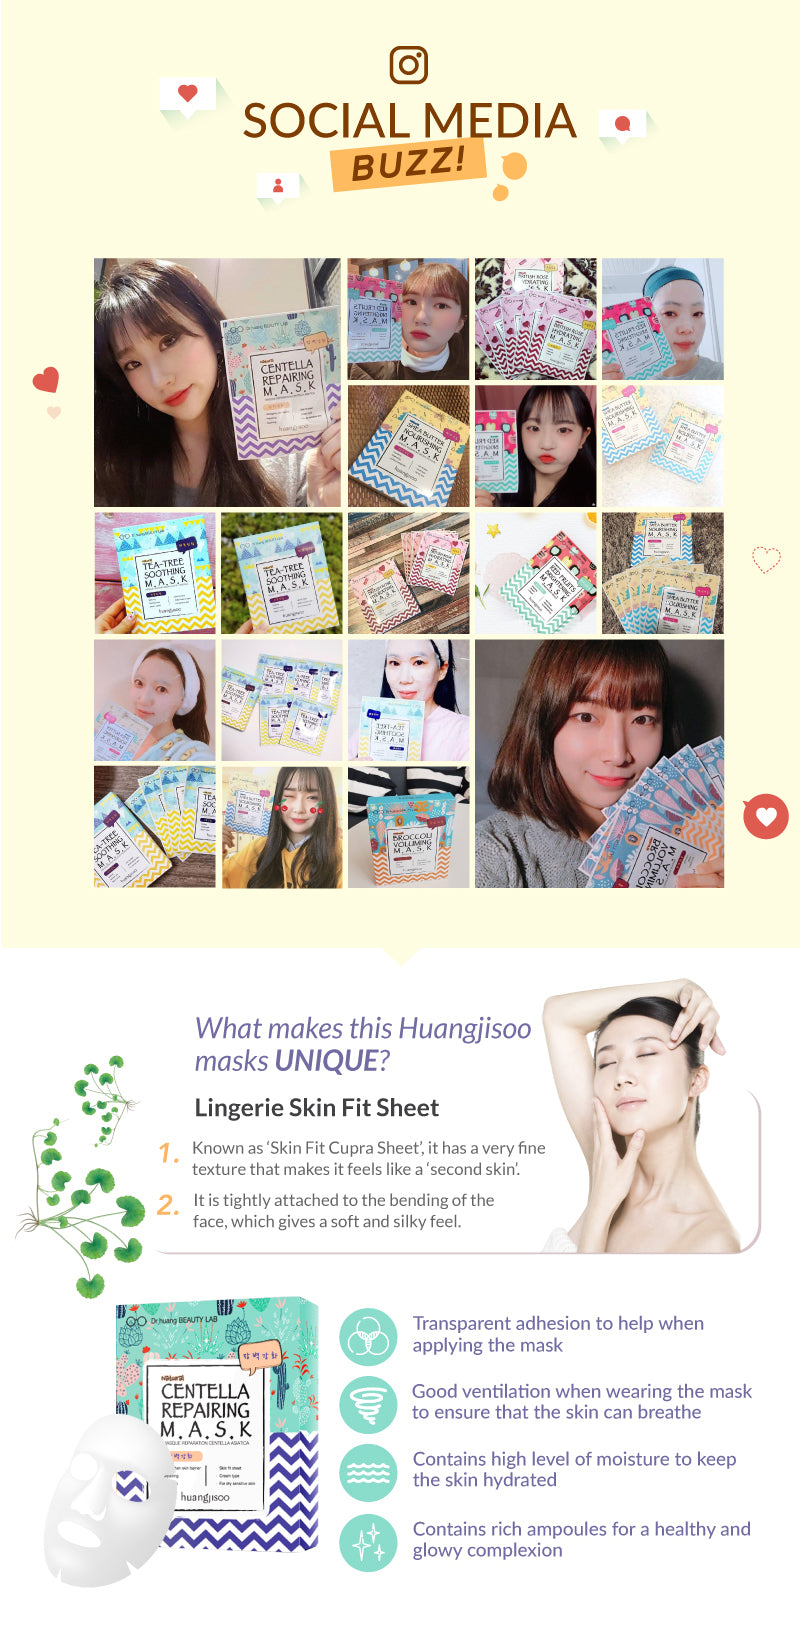 The social media buzz of the huangjisoo mask was crazy. The Centella Repairing Mask helps to repair, soothe your skin, and strengthen your skin barrier. It is a cream type mask and great for people with dry sensitive skin!